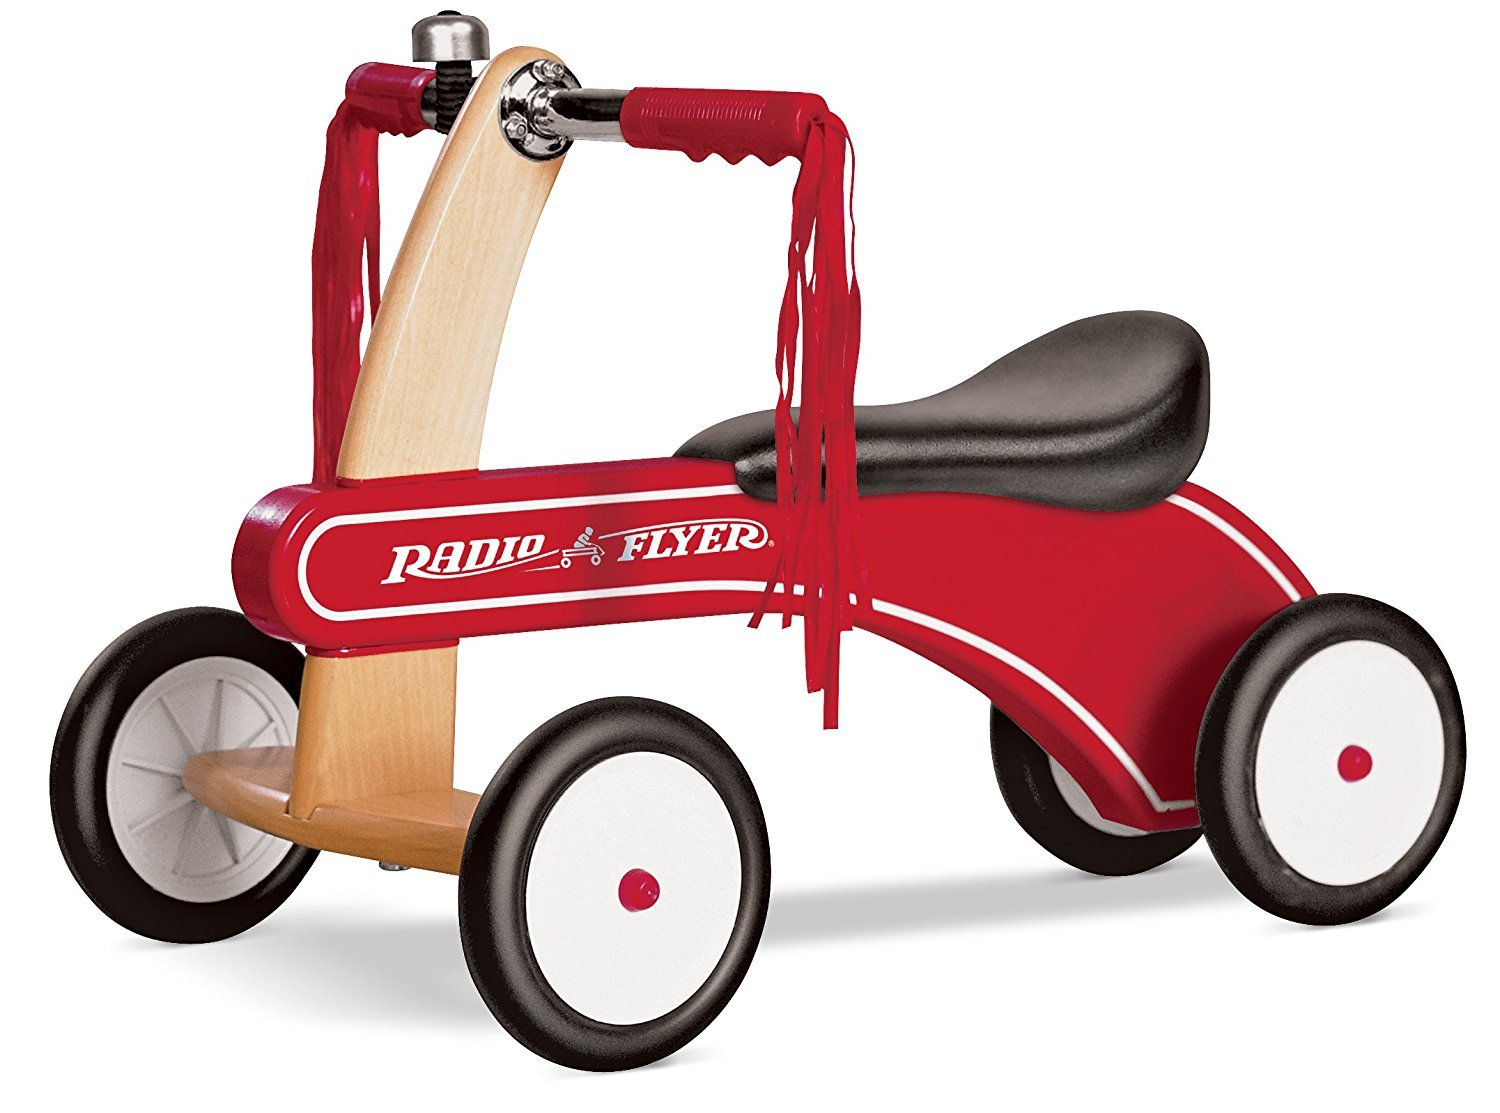 radio flyer best tricycles for kids toddlers